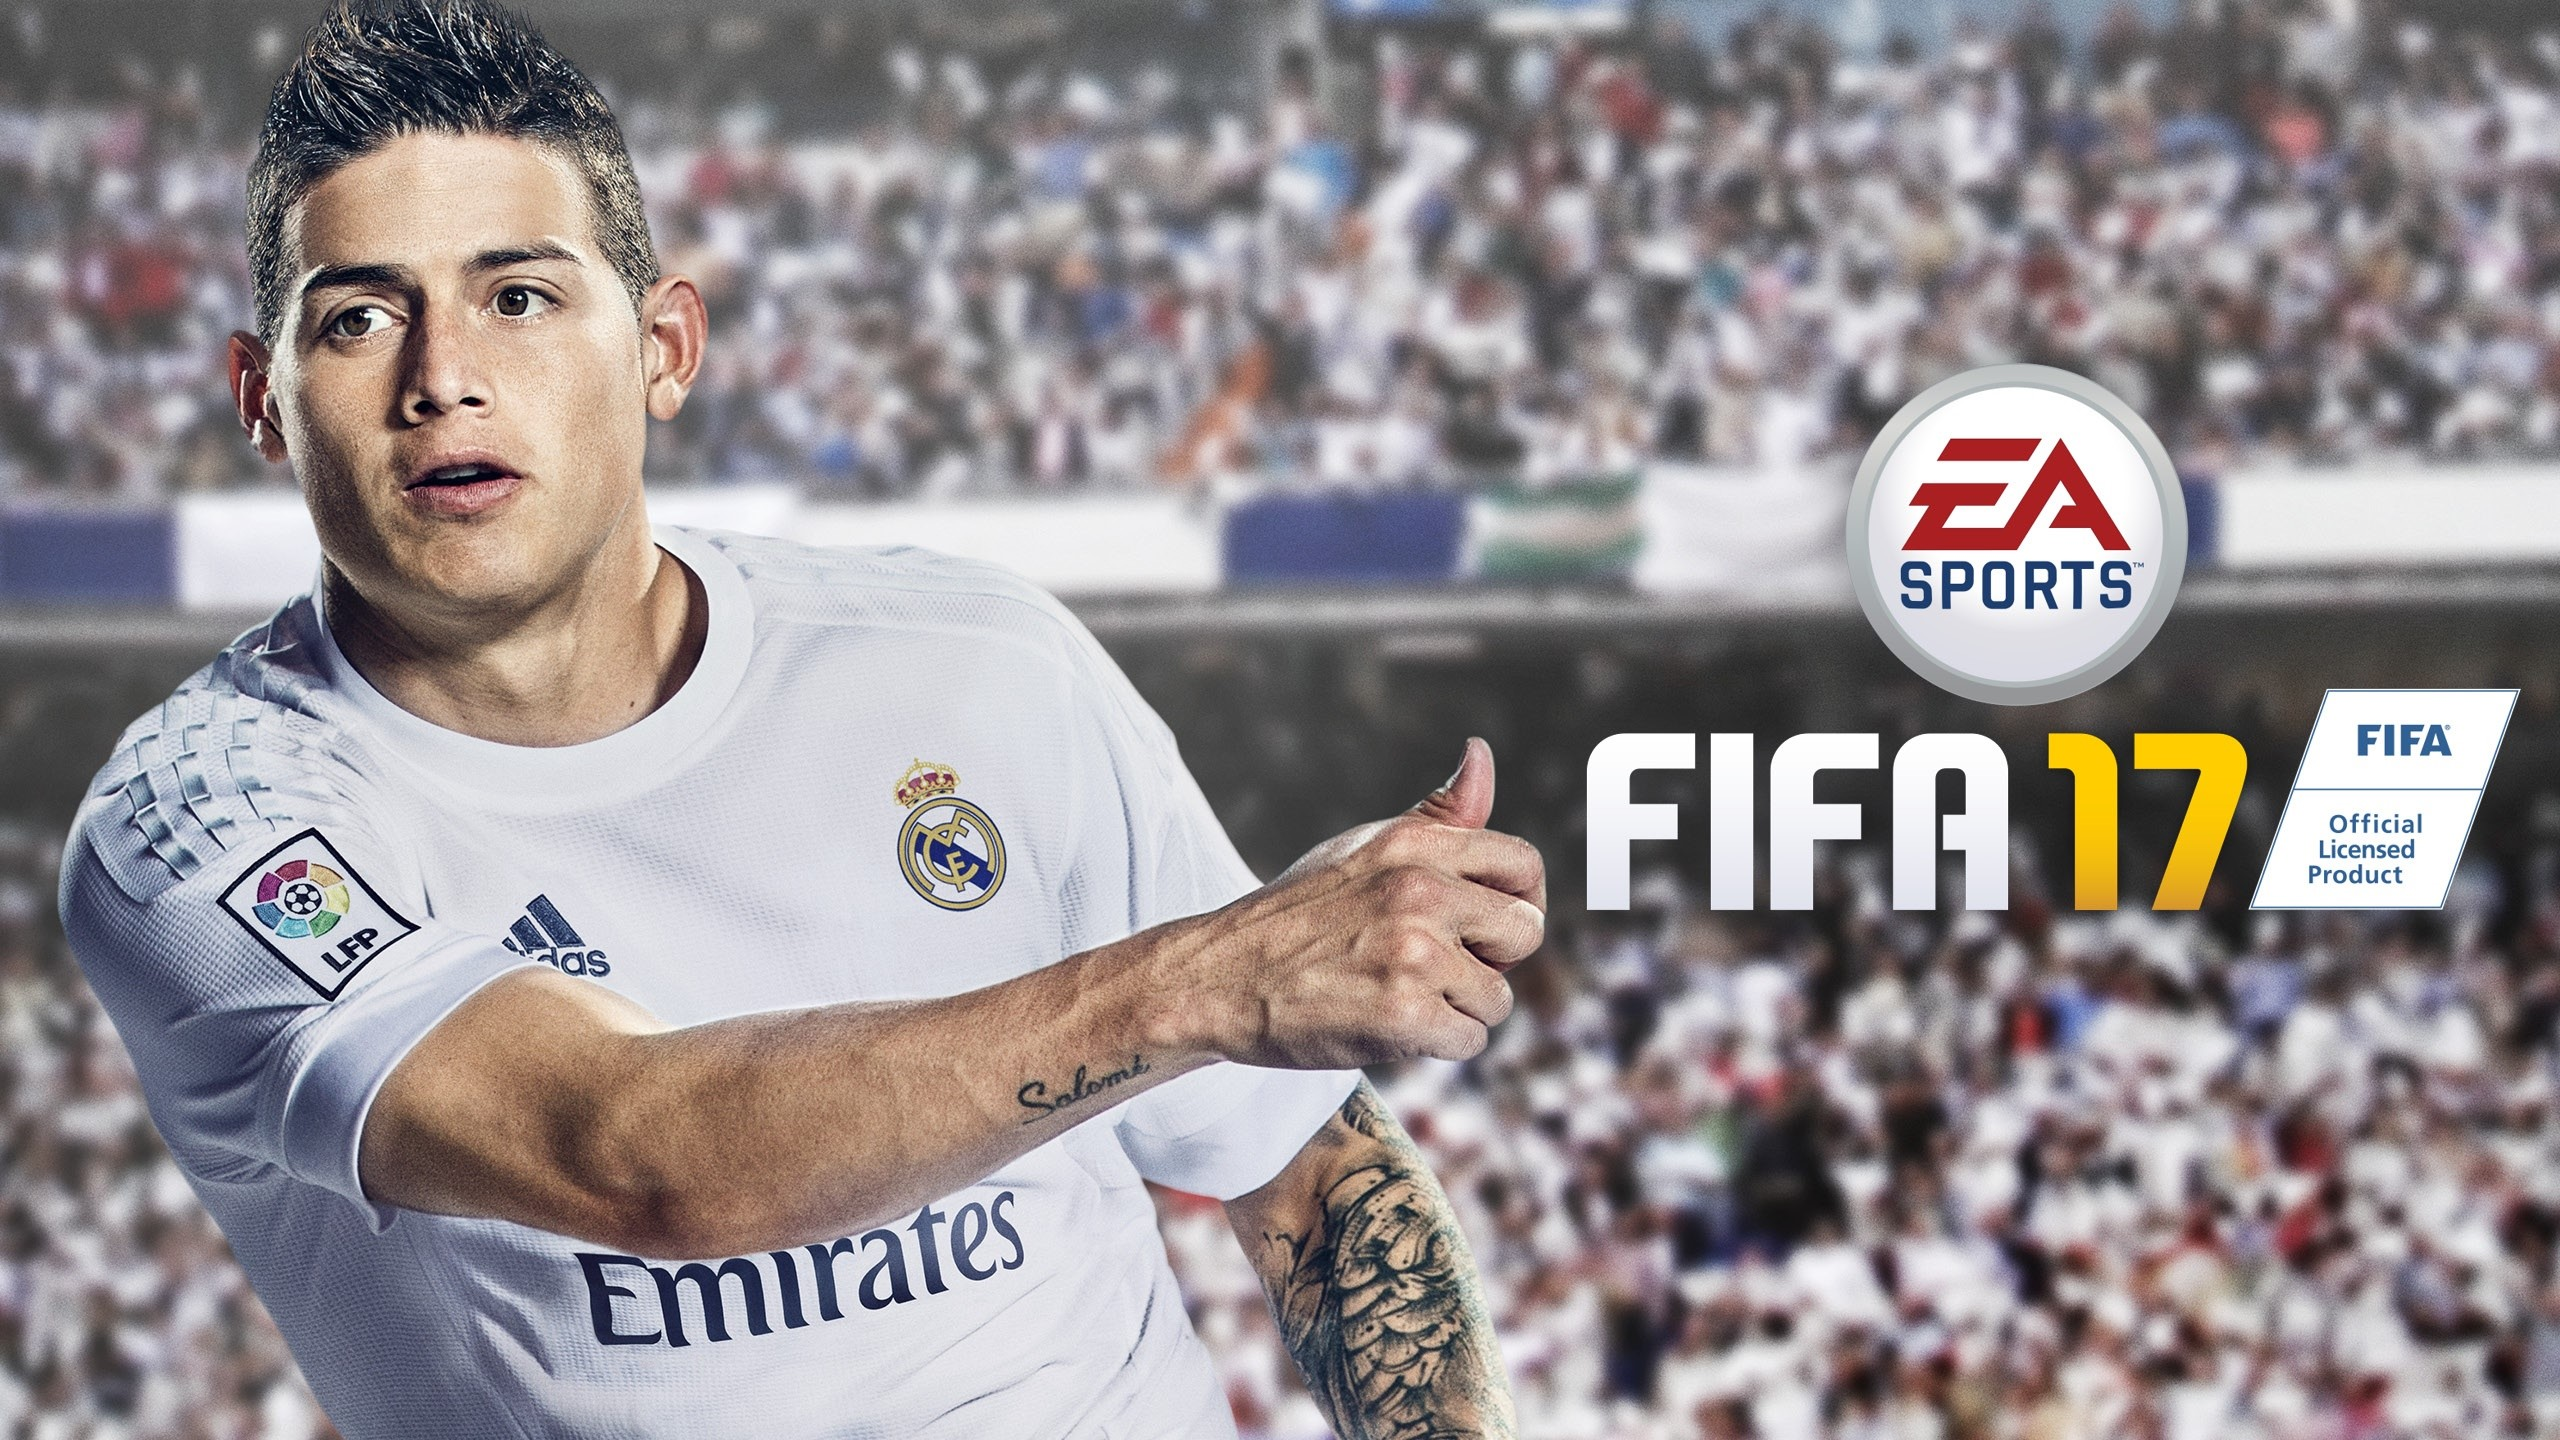 Wallpaper James Rodriguez en Fifa 17 Images